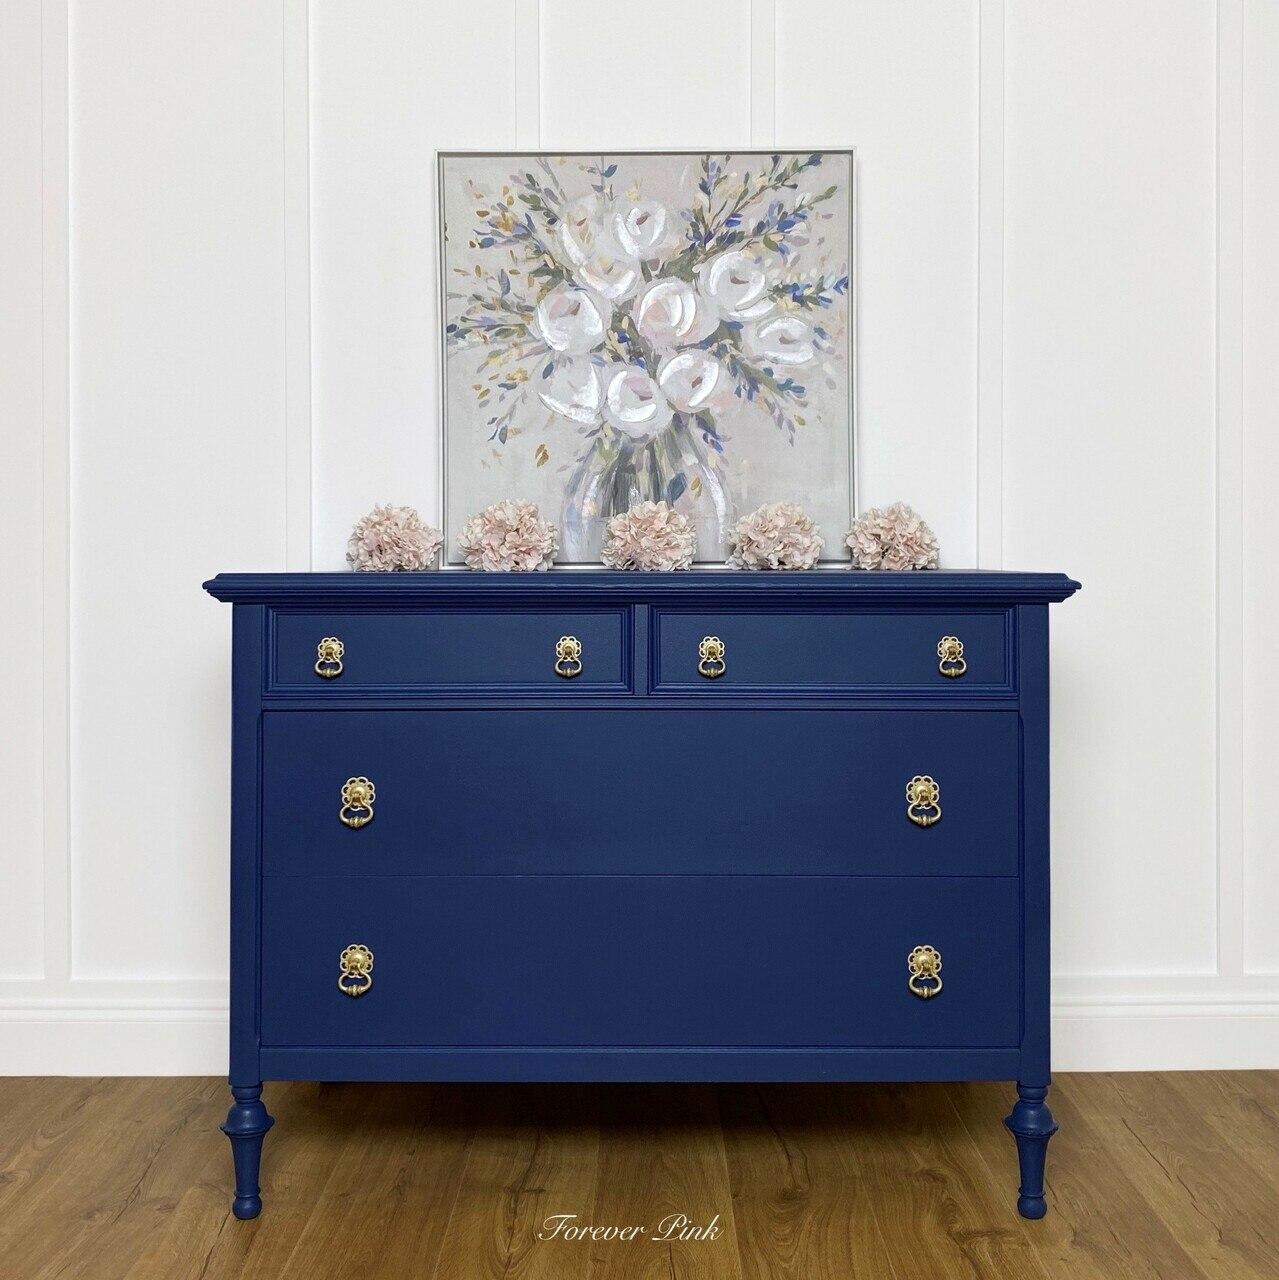 A wooden dresser painted in the Country Chic Paint dark blue color Starstruck.